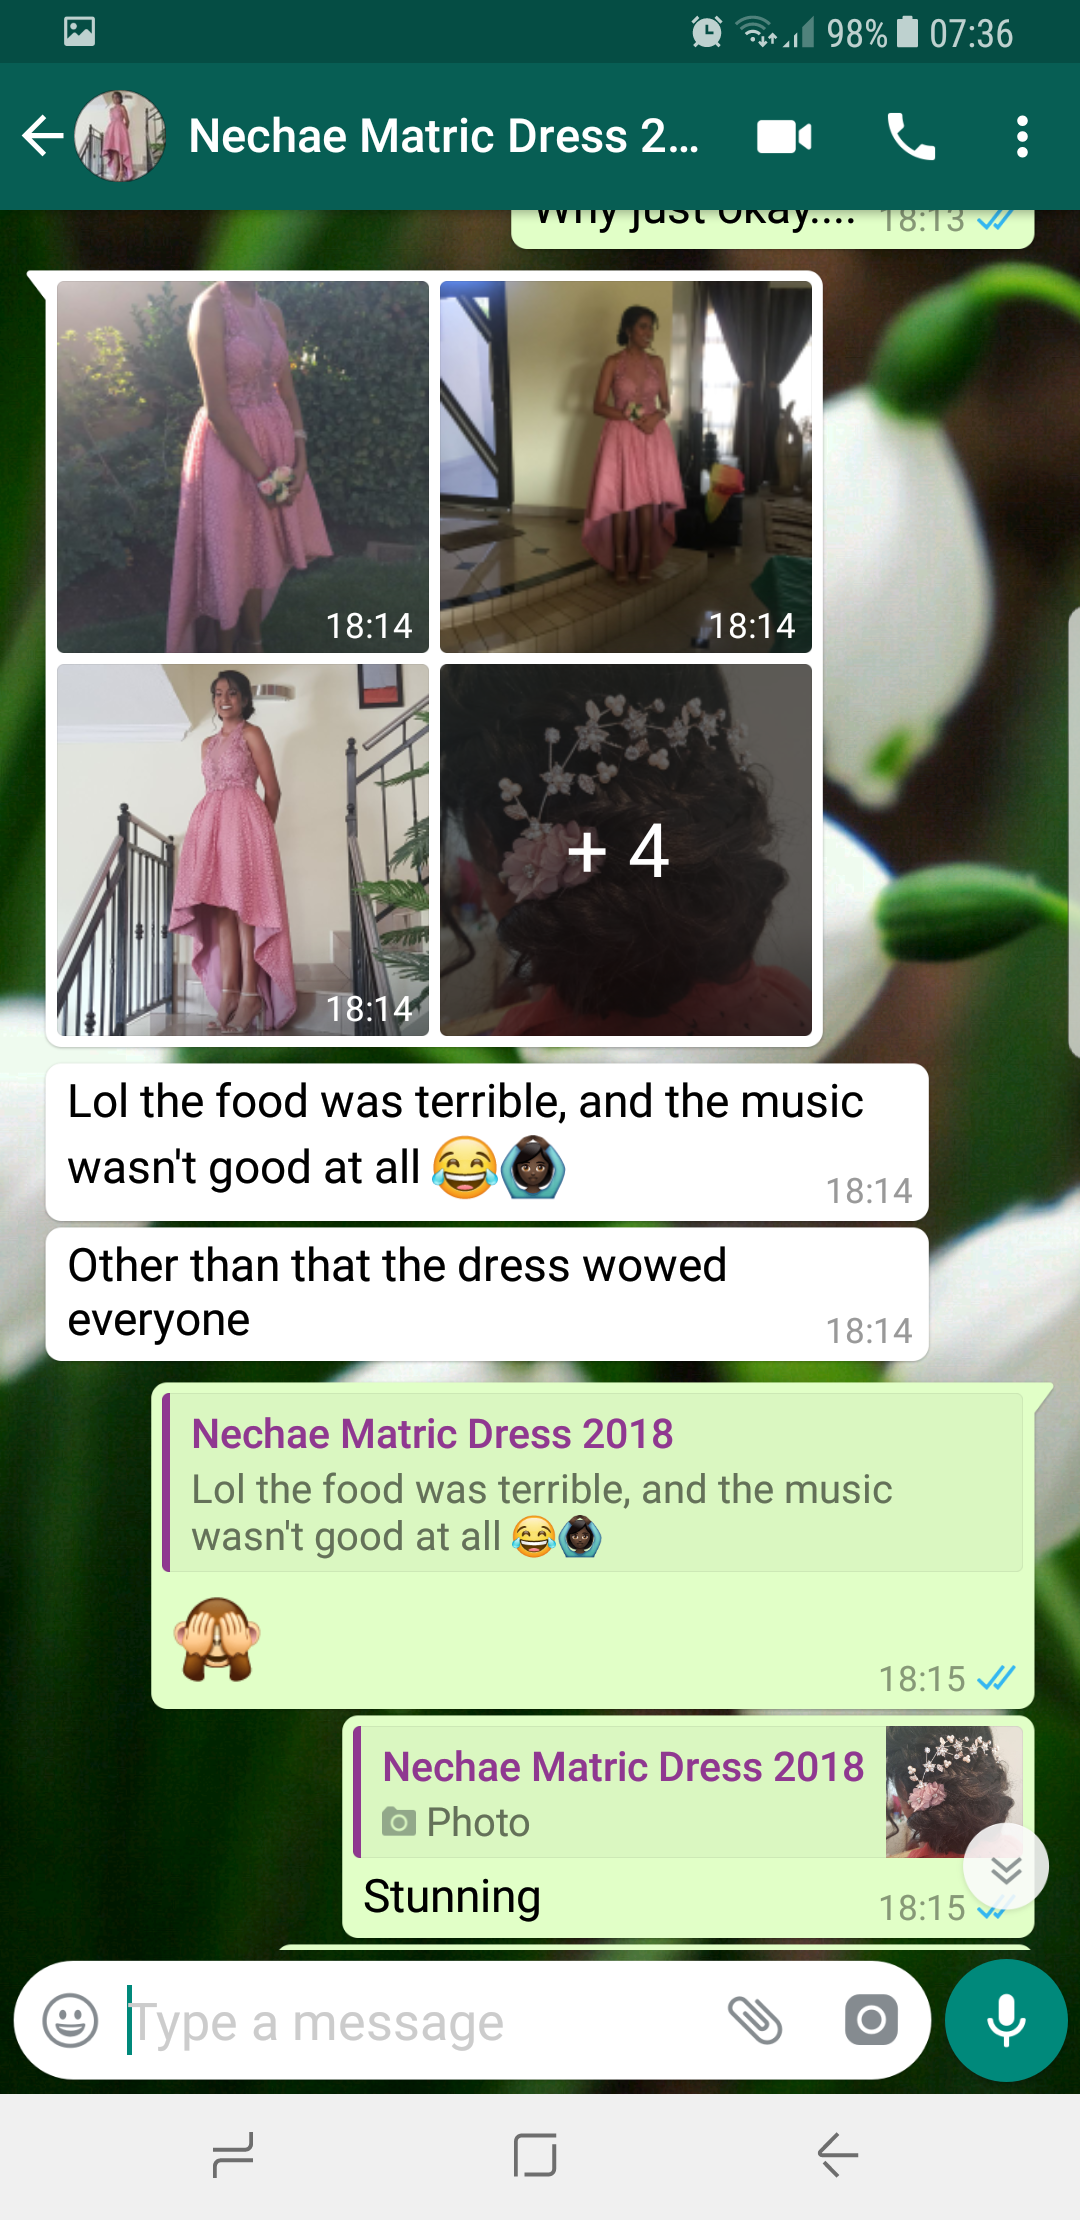 Nechae, a private client of Marisela Veludo's gives feedback for her evening dress designed and made by Marisela Veludo.